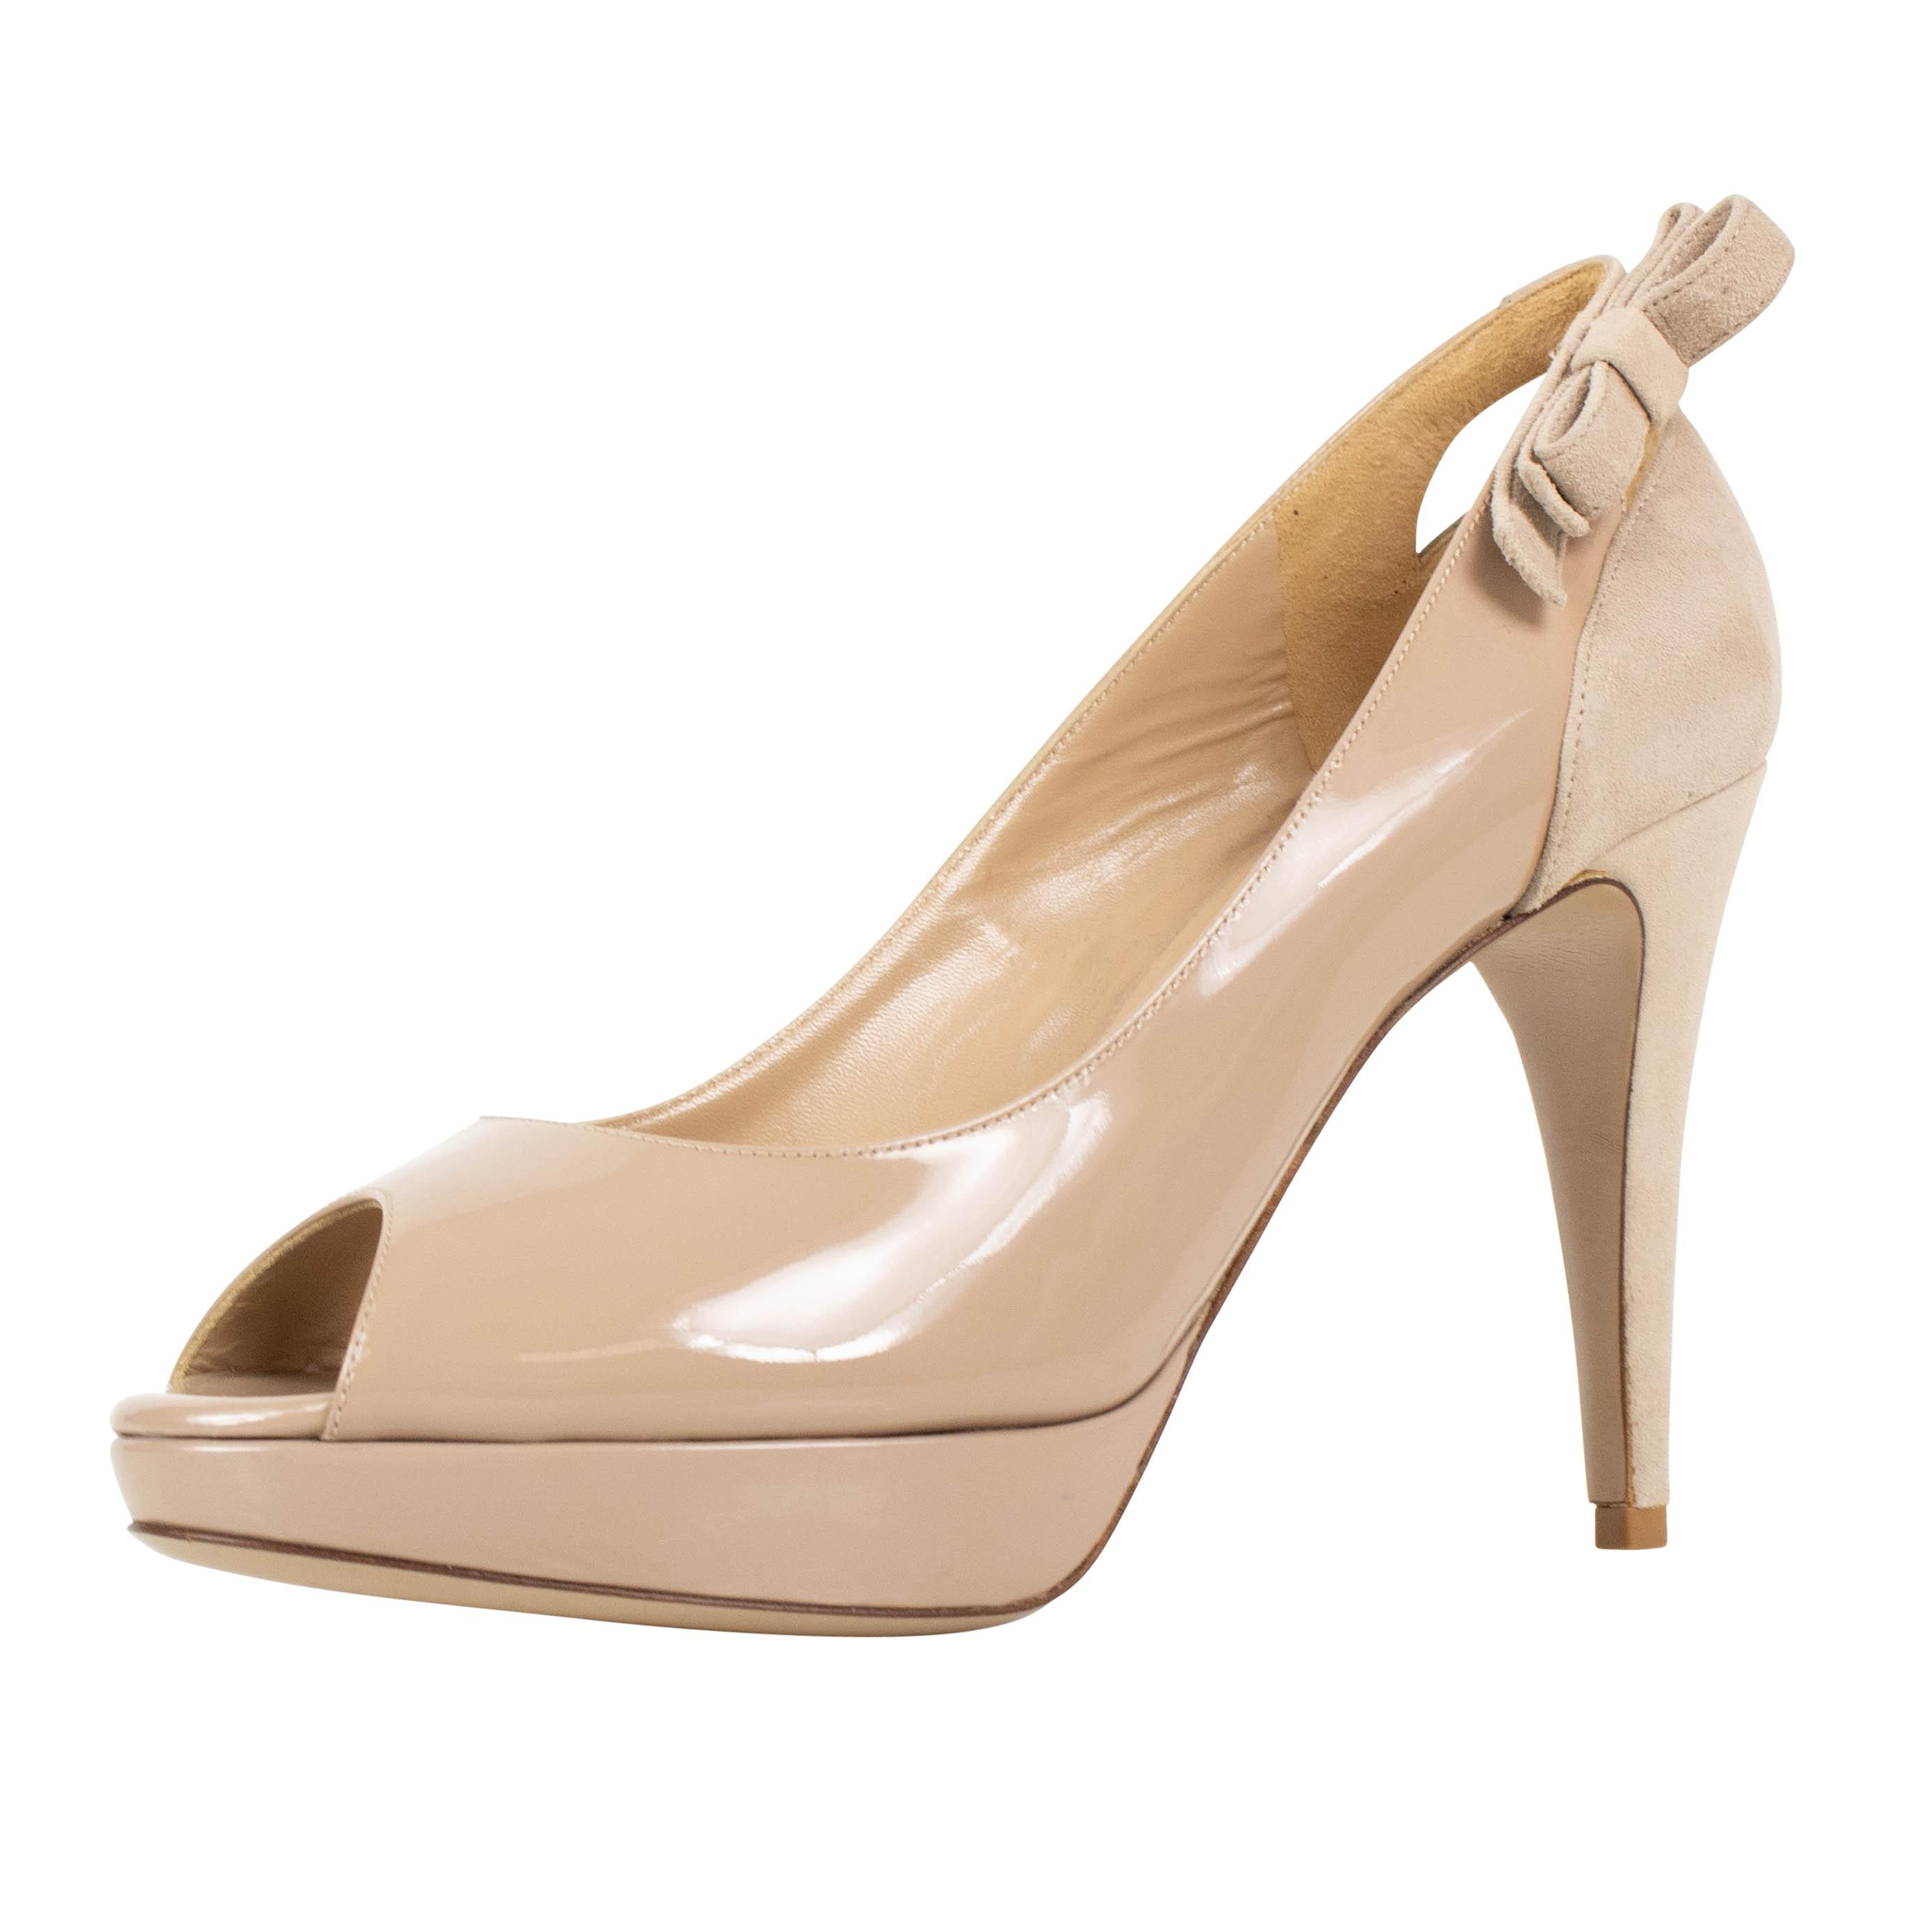 Valentino Nude Bow Open Toe Patent Leather Pumps Size US 9 Regular (M, B)